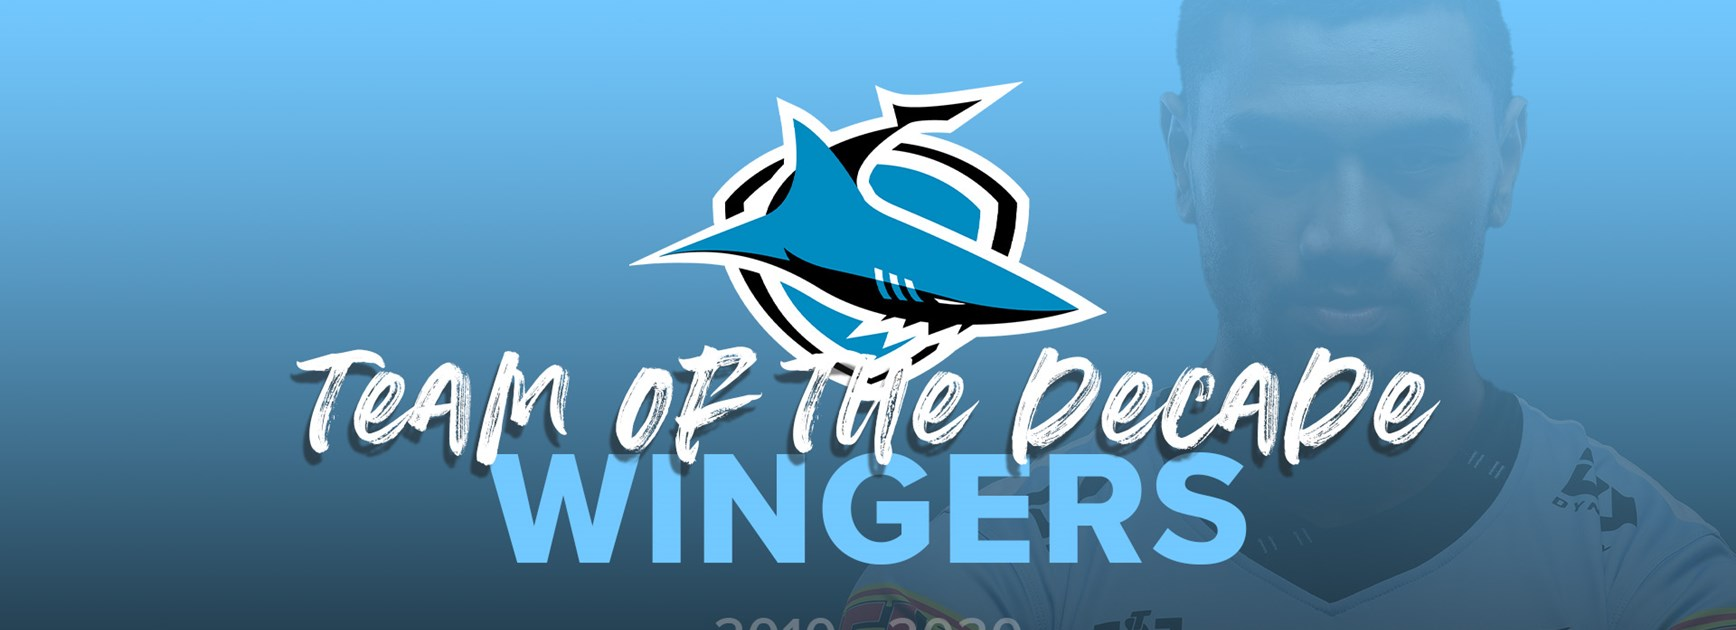 Sharks Team of the Decade – 2010-2020 - Wingers